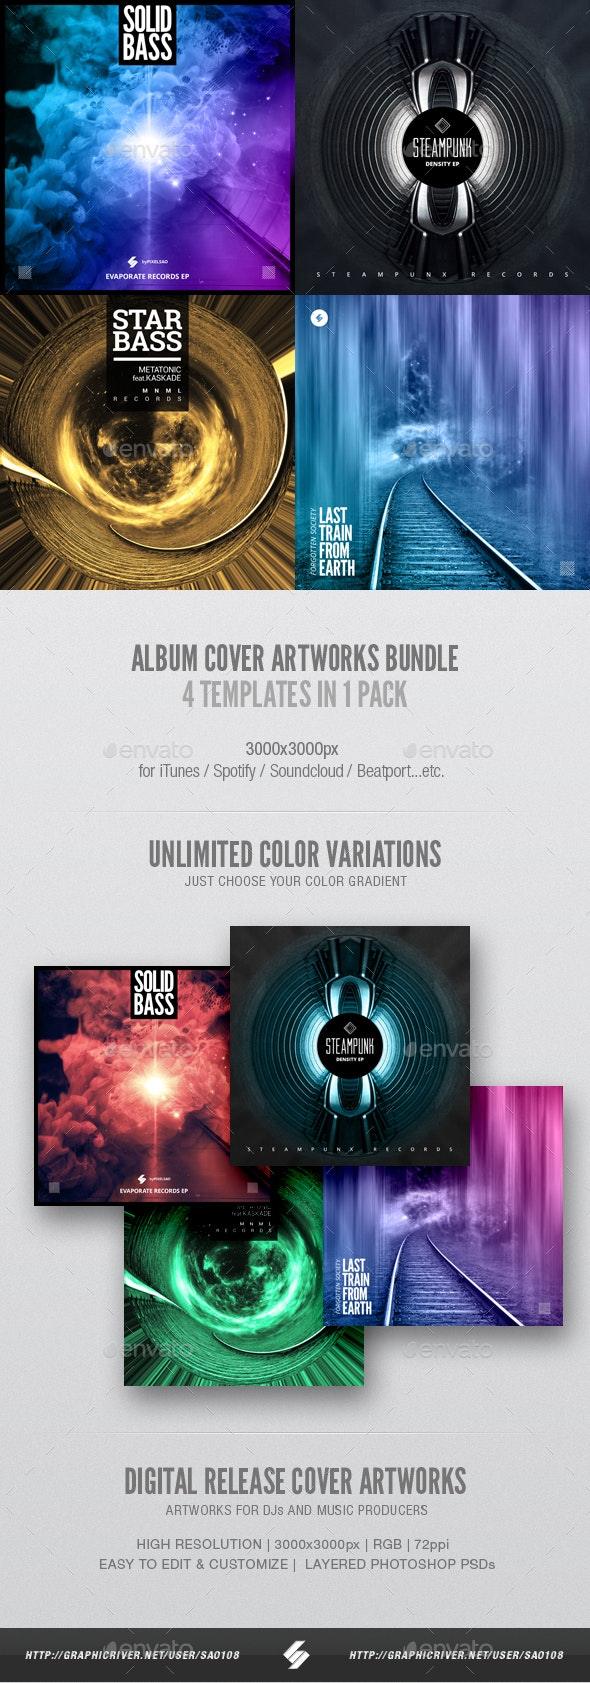 Music Album Cover Artwork Templates Bundle 17 - Miscellaneous Social Media